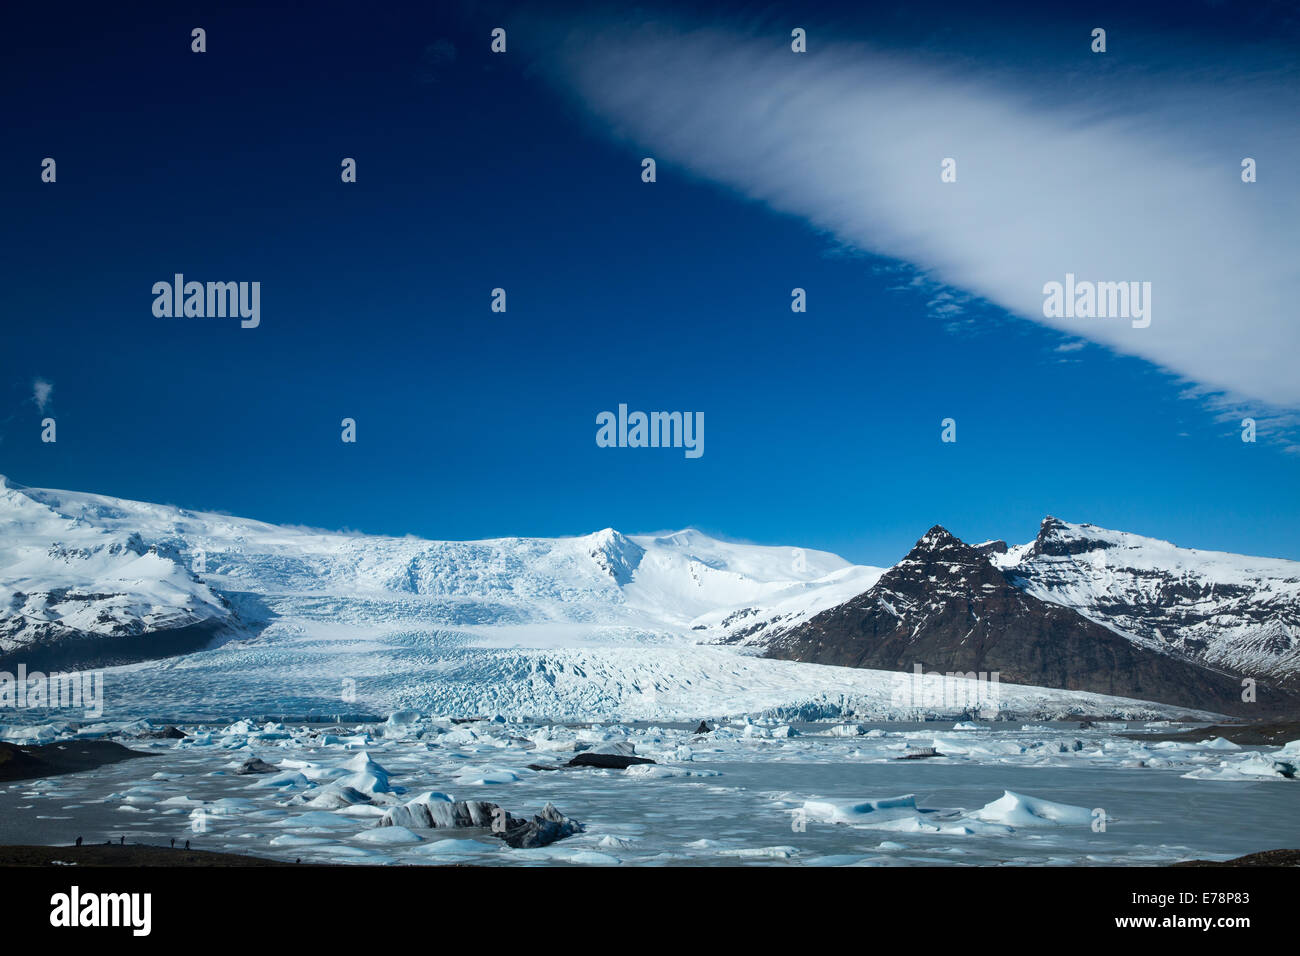 the Vatnajokull Glacier decending to sea level at Fjallsarlon, eastern Iceland - Stock Image